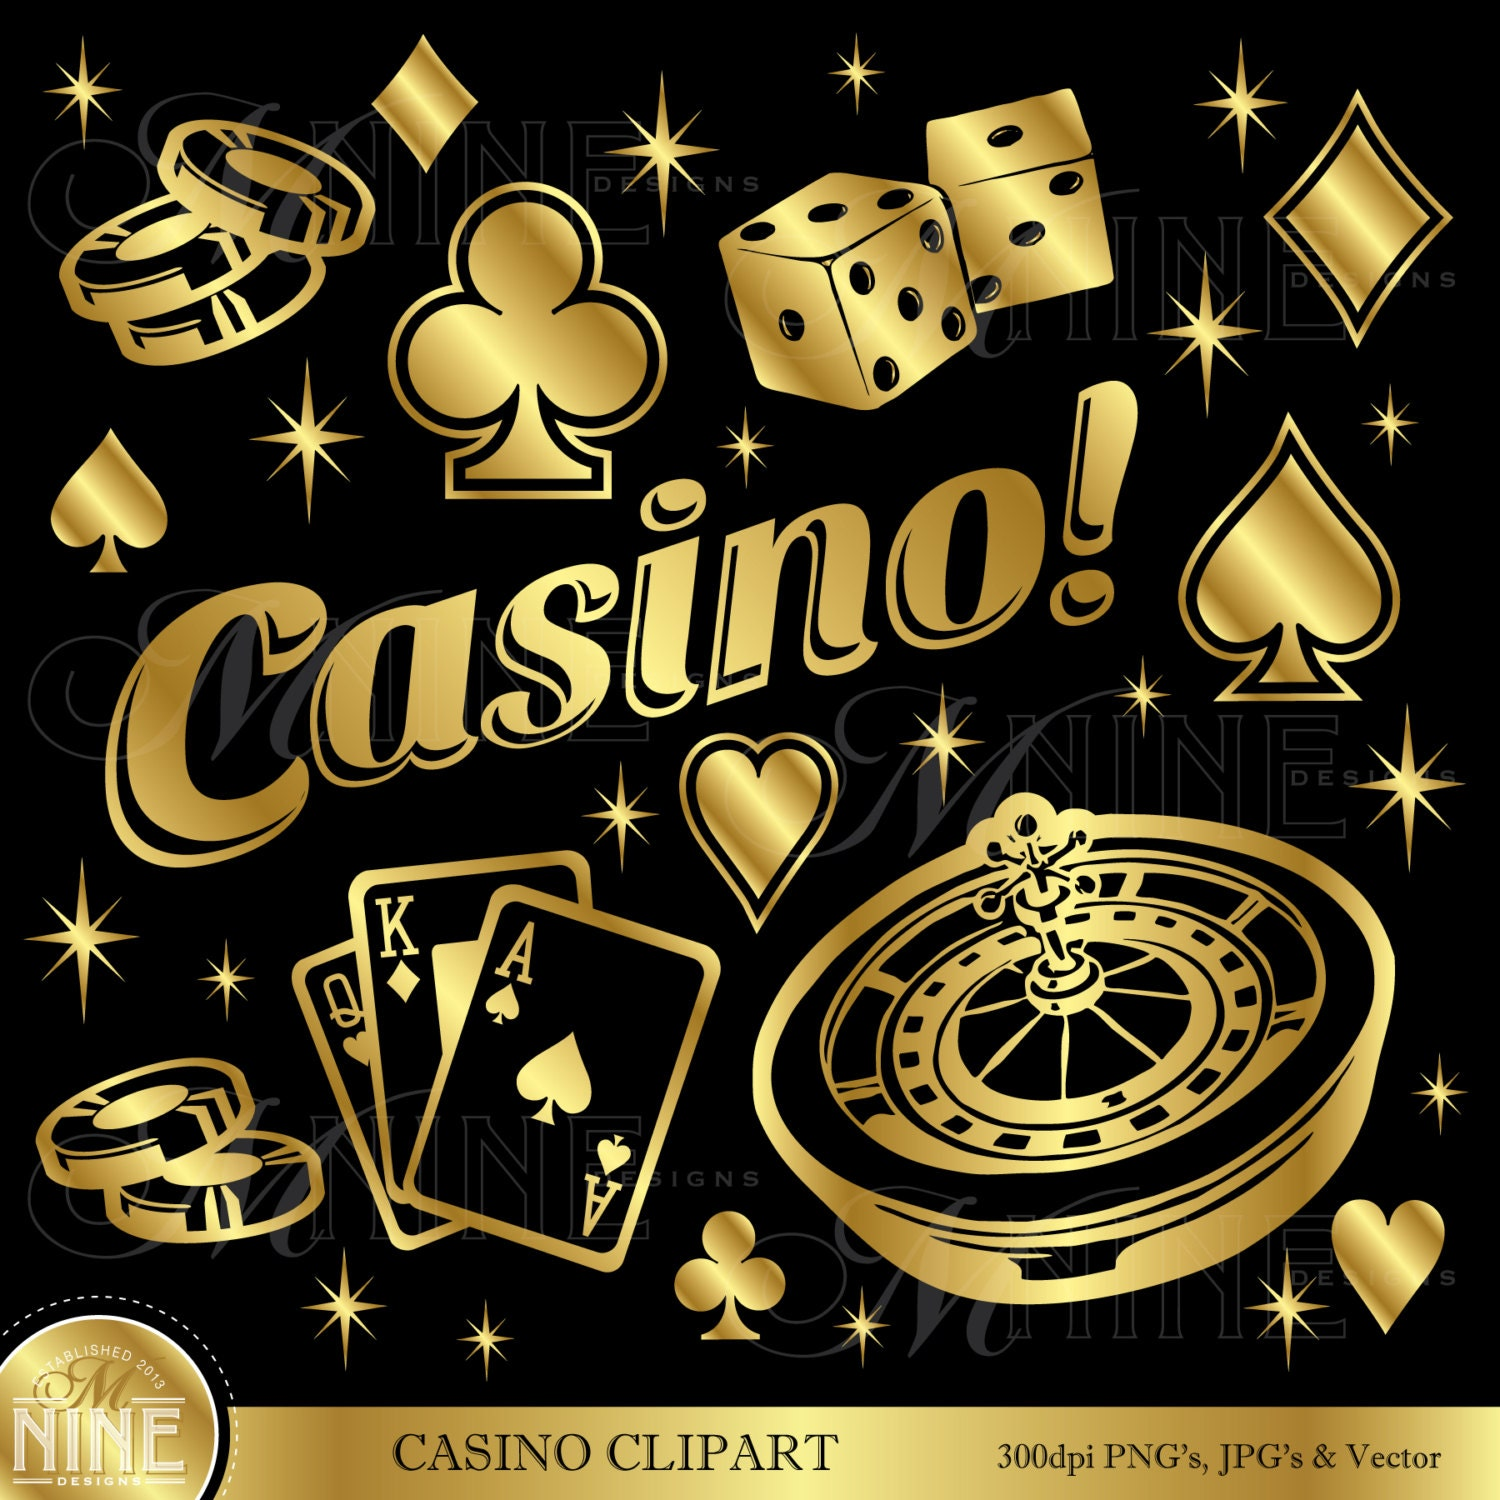 GOLD CASINO Clipart: Casino Clip Art Casino Download Vegas